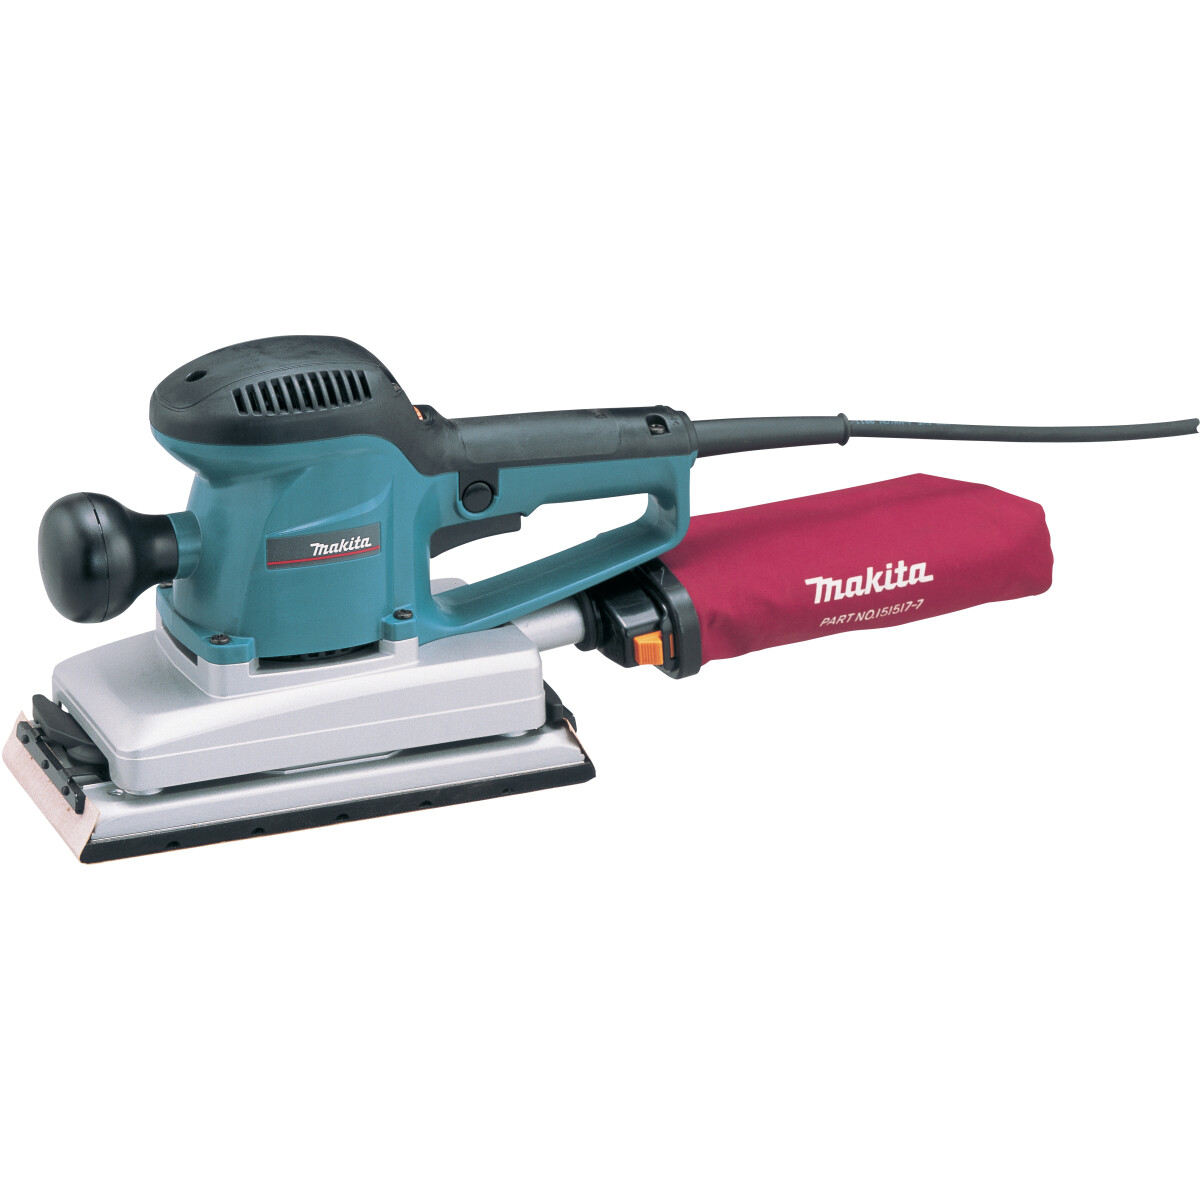 "Makita BO4900V 1/2"" Sheet Finishing Sander"